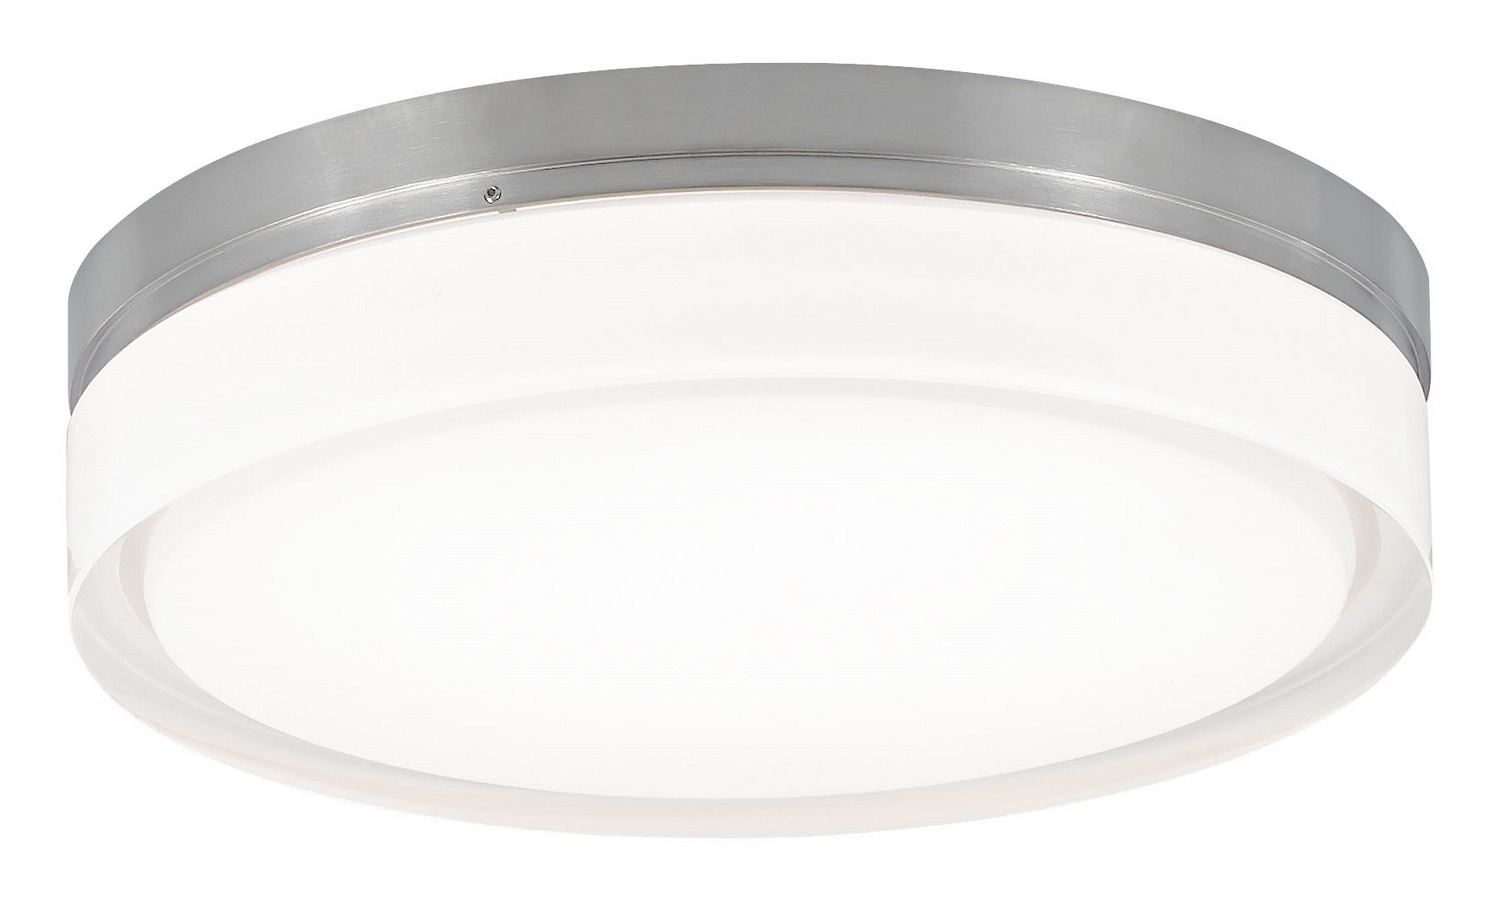 tech-lighting-cirque-flush-mount-1